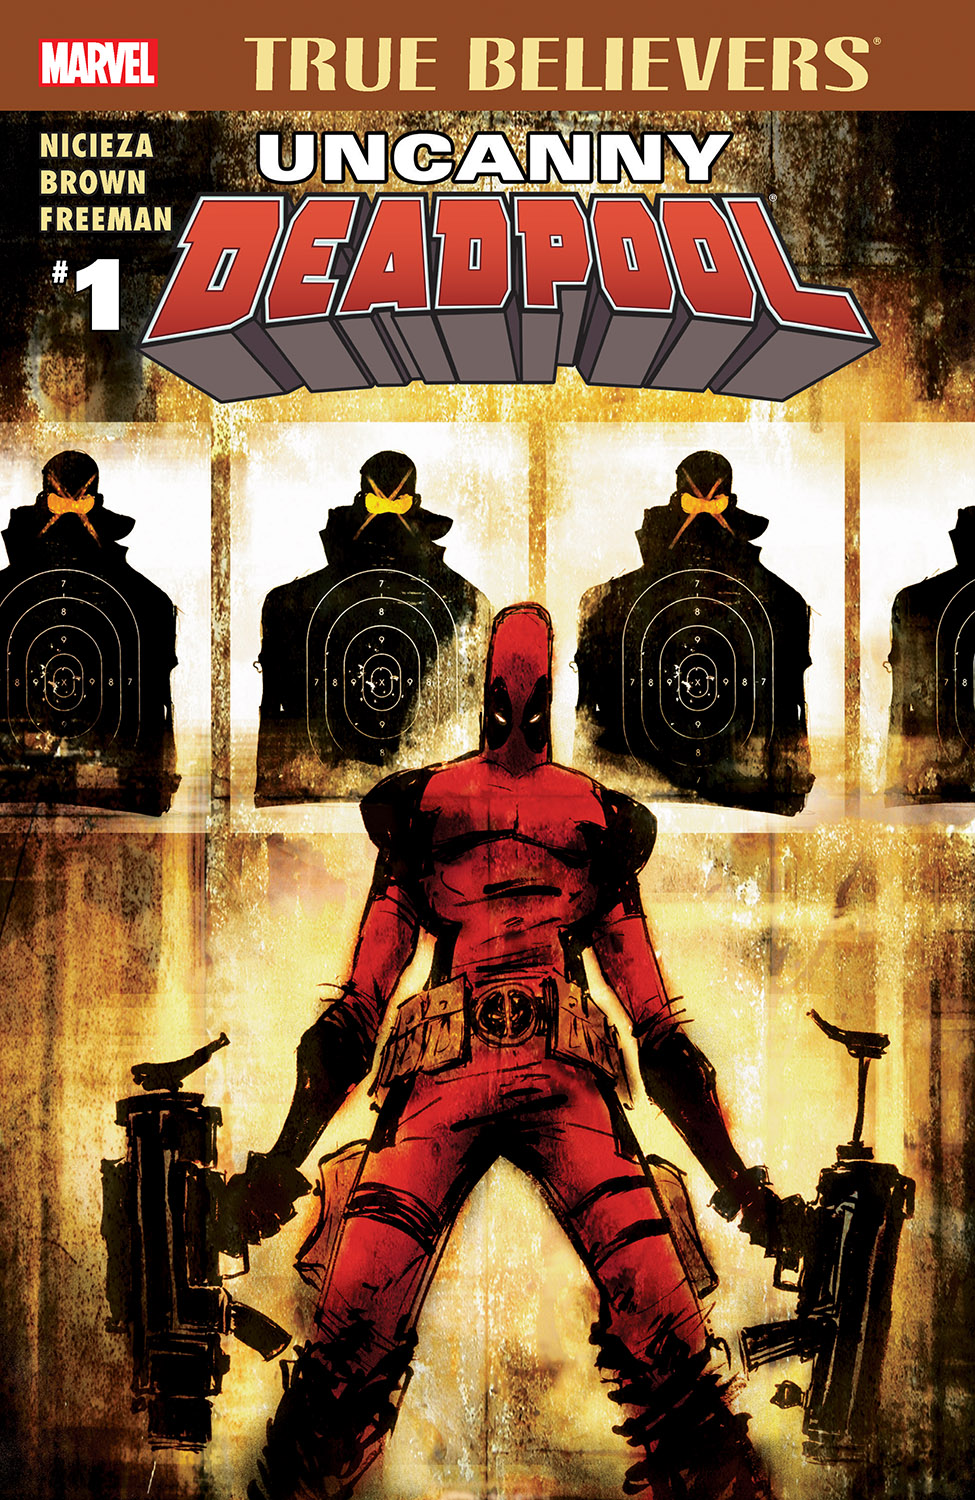 True Believers: Uncanny Deadpool (2016) #1